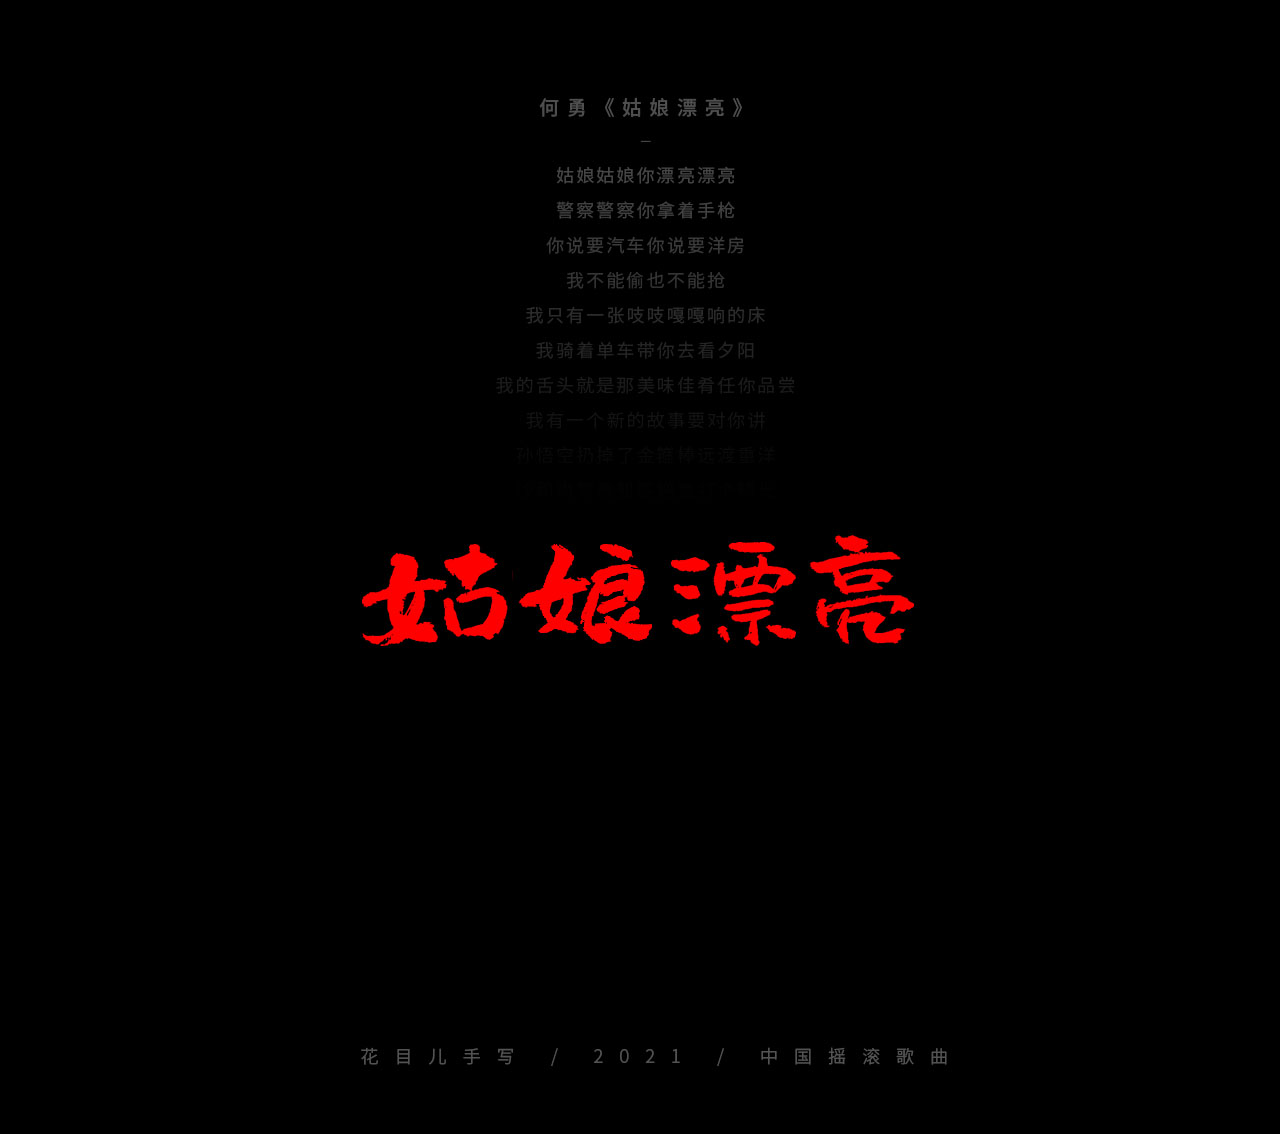 10P Collection of the latest Chinese font design schemes in 2021 #.254